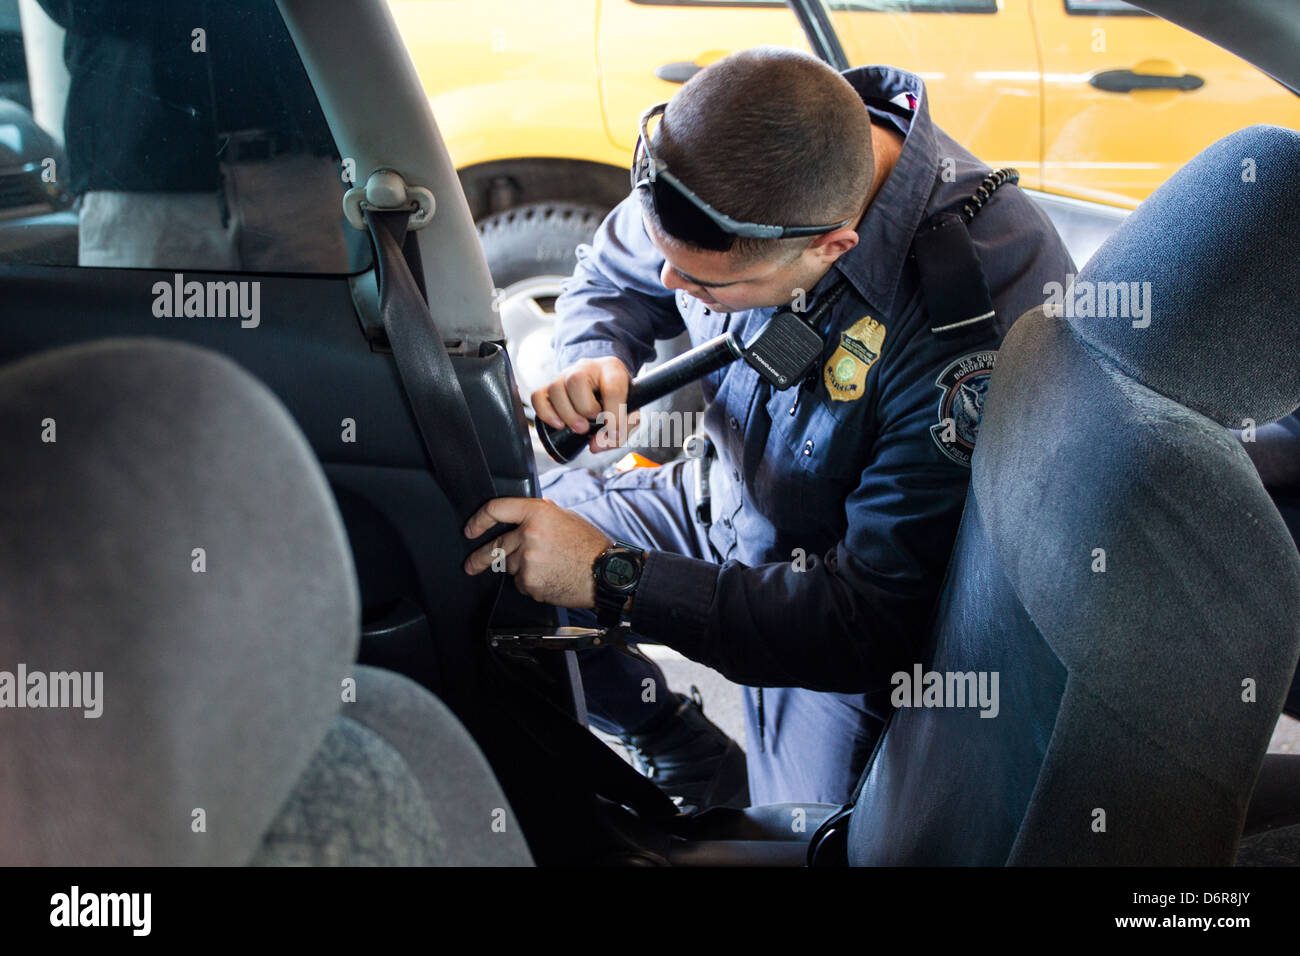 A US Customs And Border Patrol Officer Searches A Vehicle